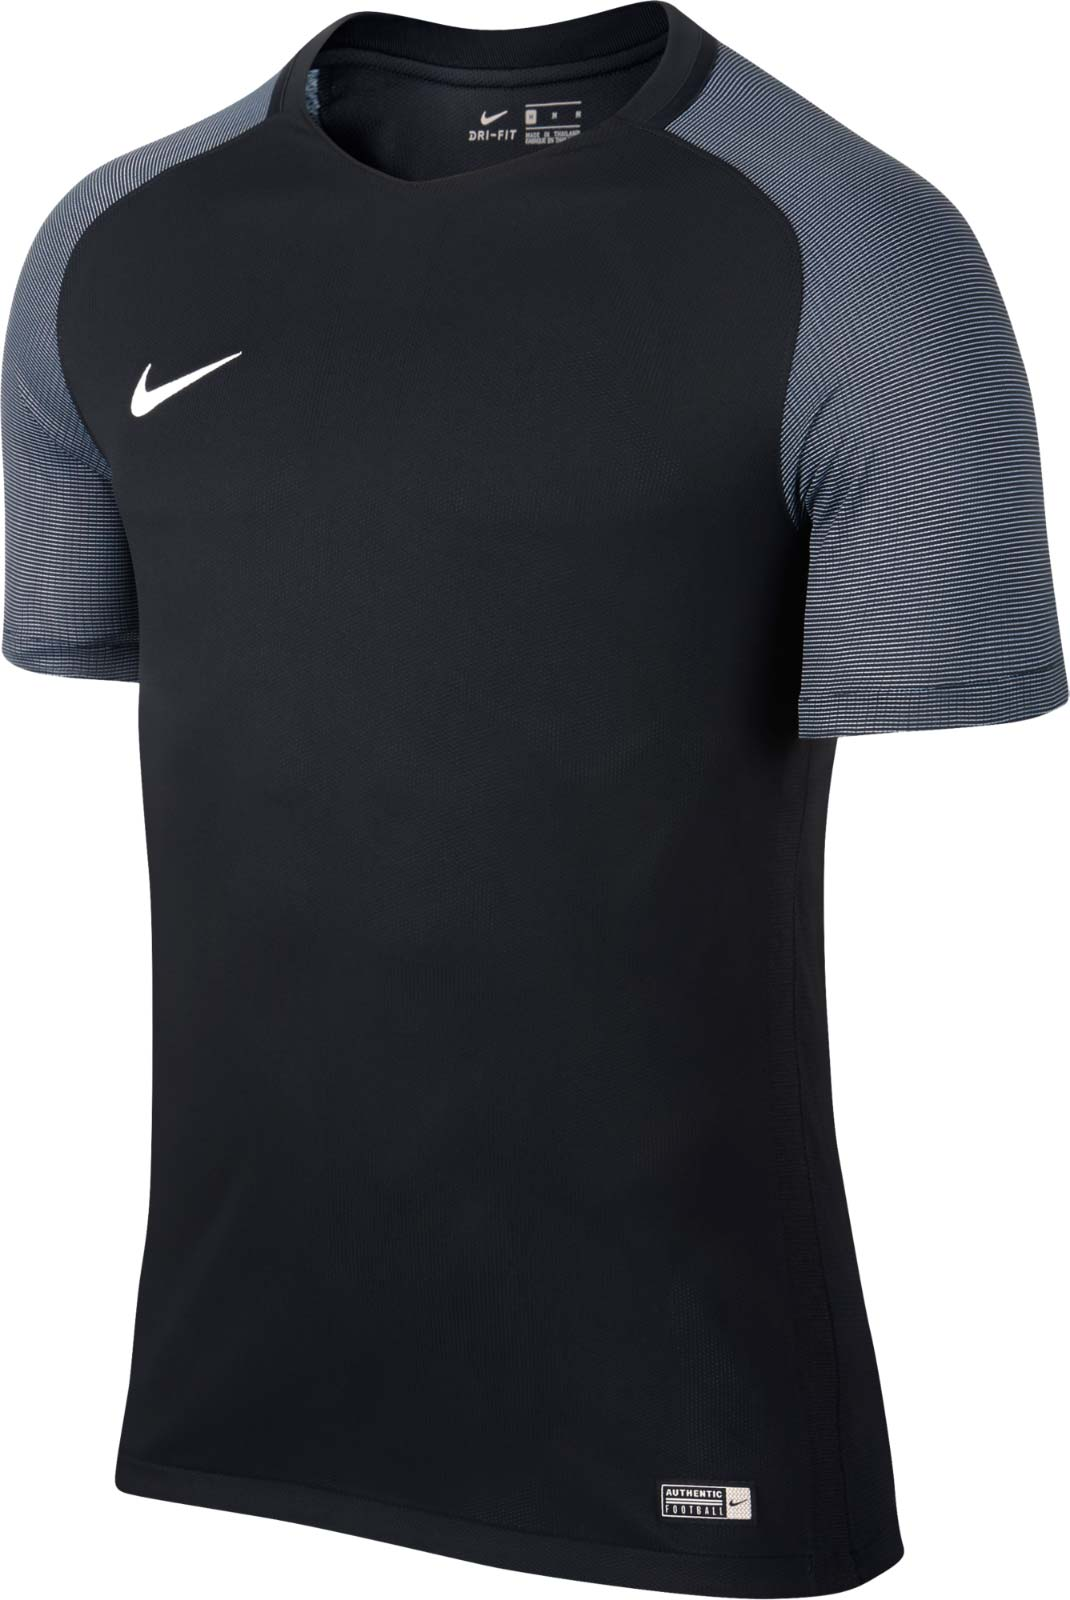 Nike Team Jerseys We have great deals for Nike team jerseys for teams of all sizes and ages. Browse our selection of Nike jerseys that come in tons of different styles and colors to choose from.